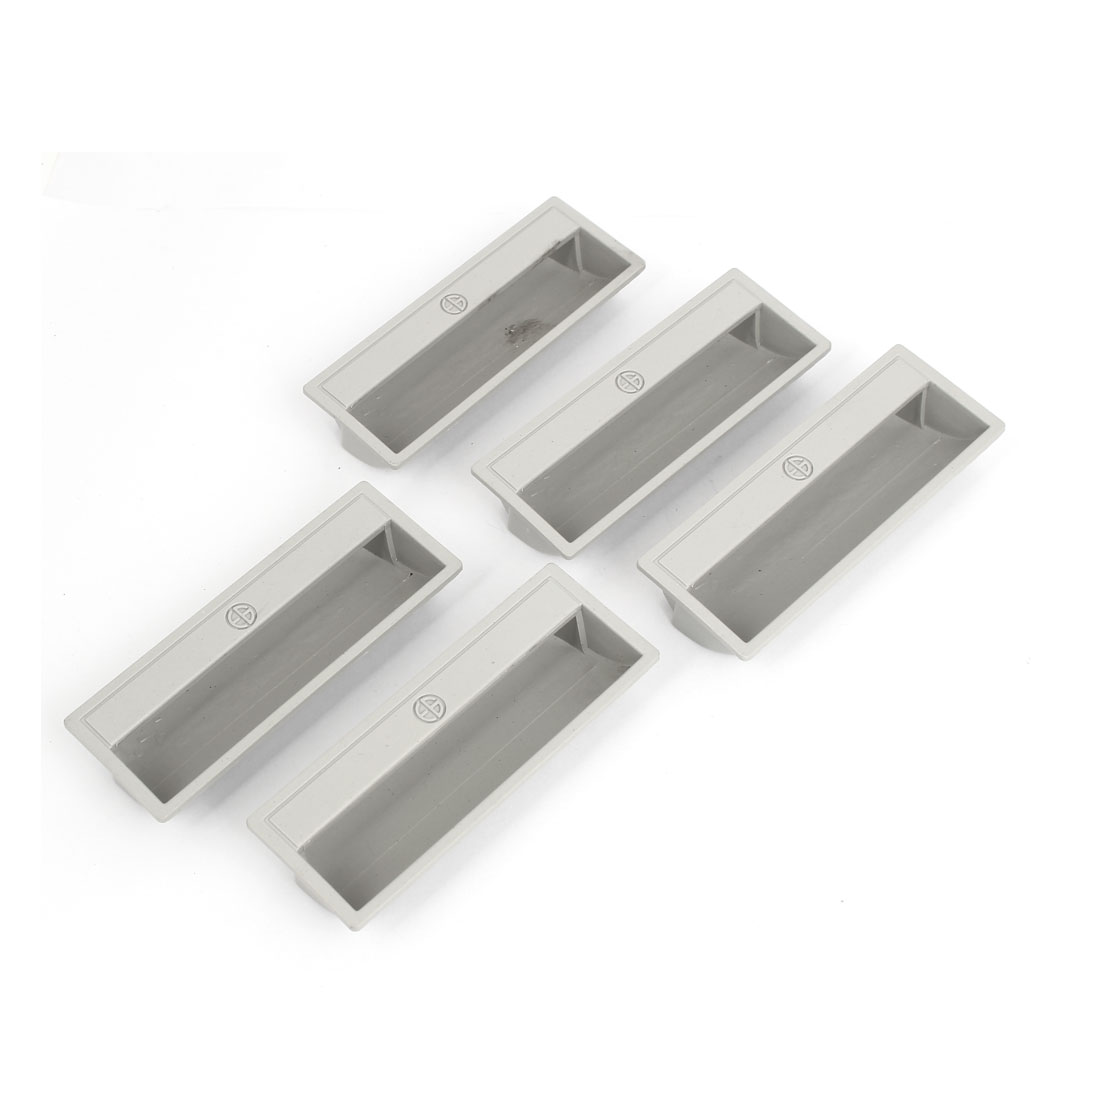 110mmx40x20mm Cabinet Drawer Plastic Pulls Handles Gray 5pcs